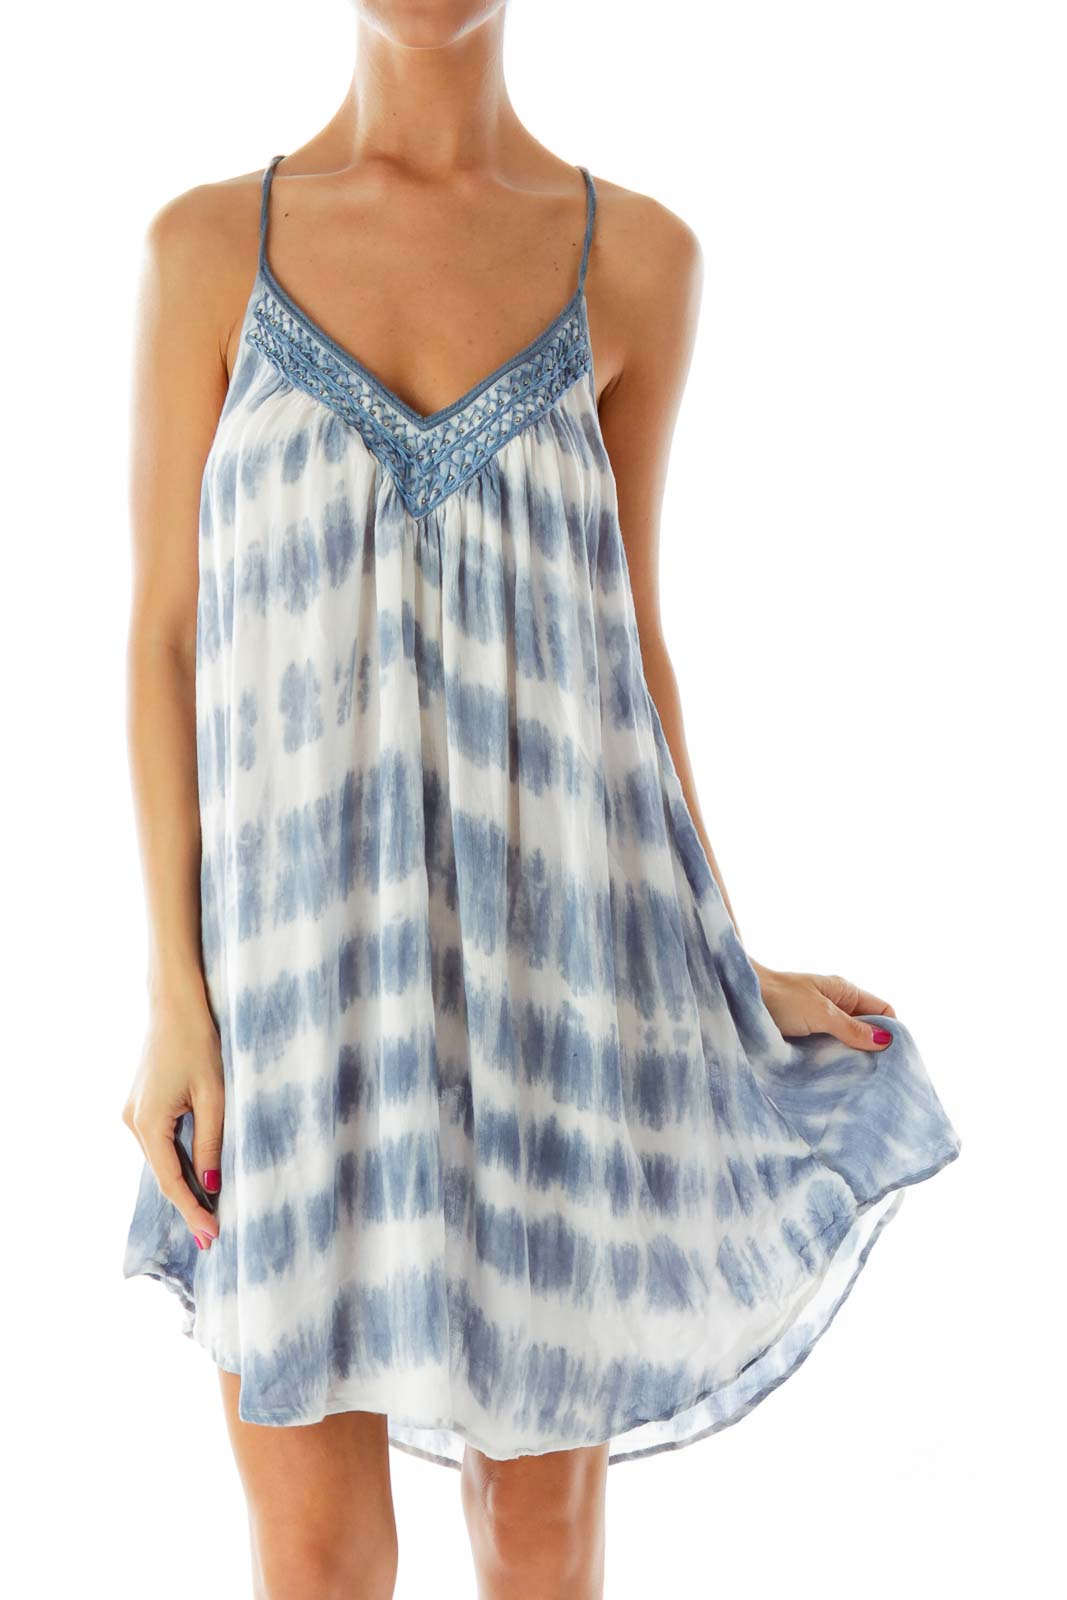 Blue White Tie Dye Dress Front